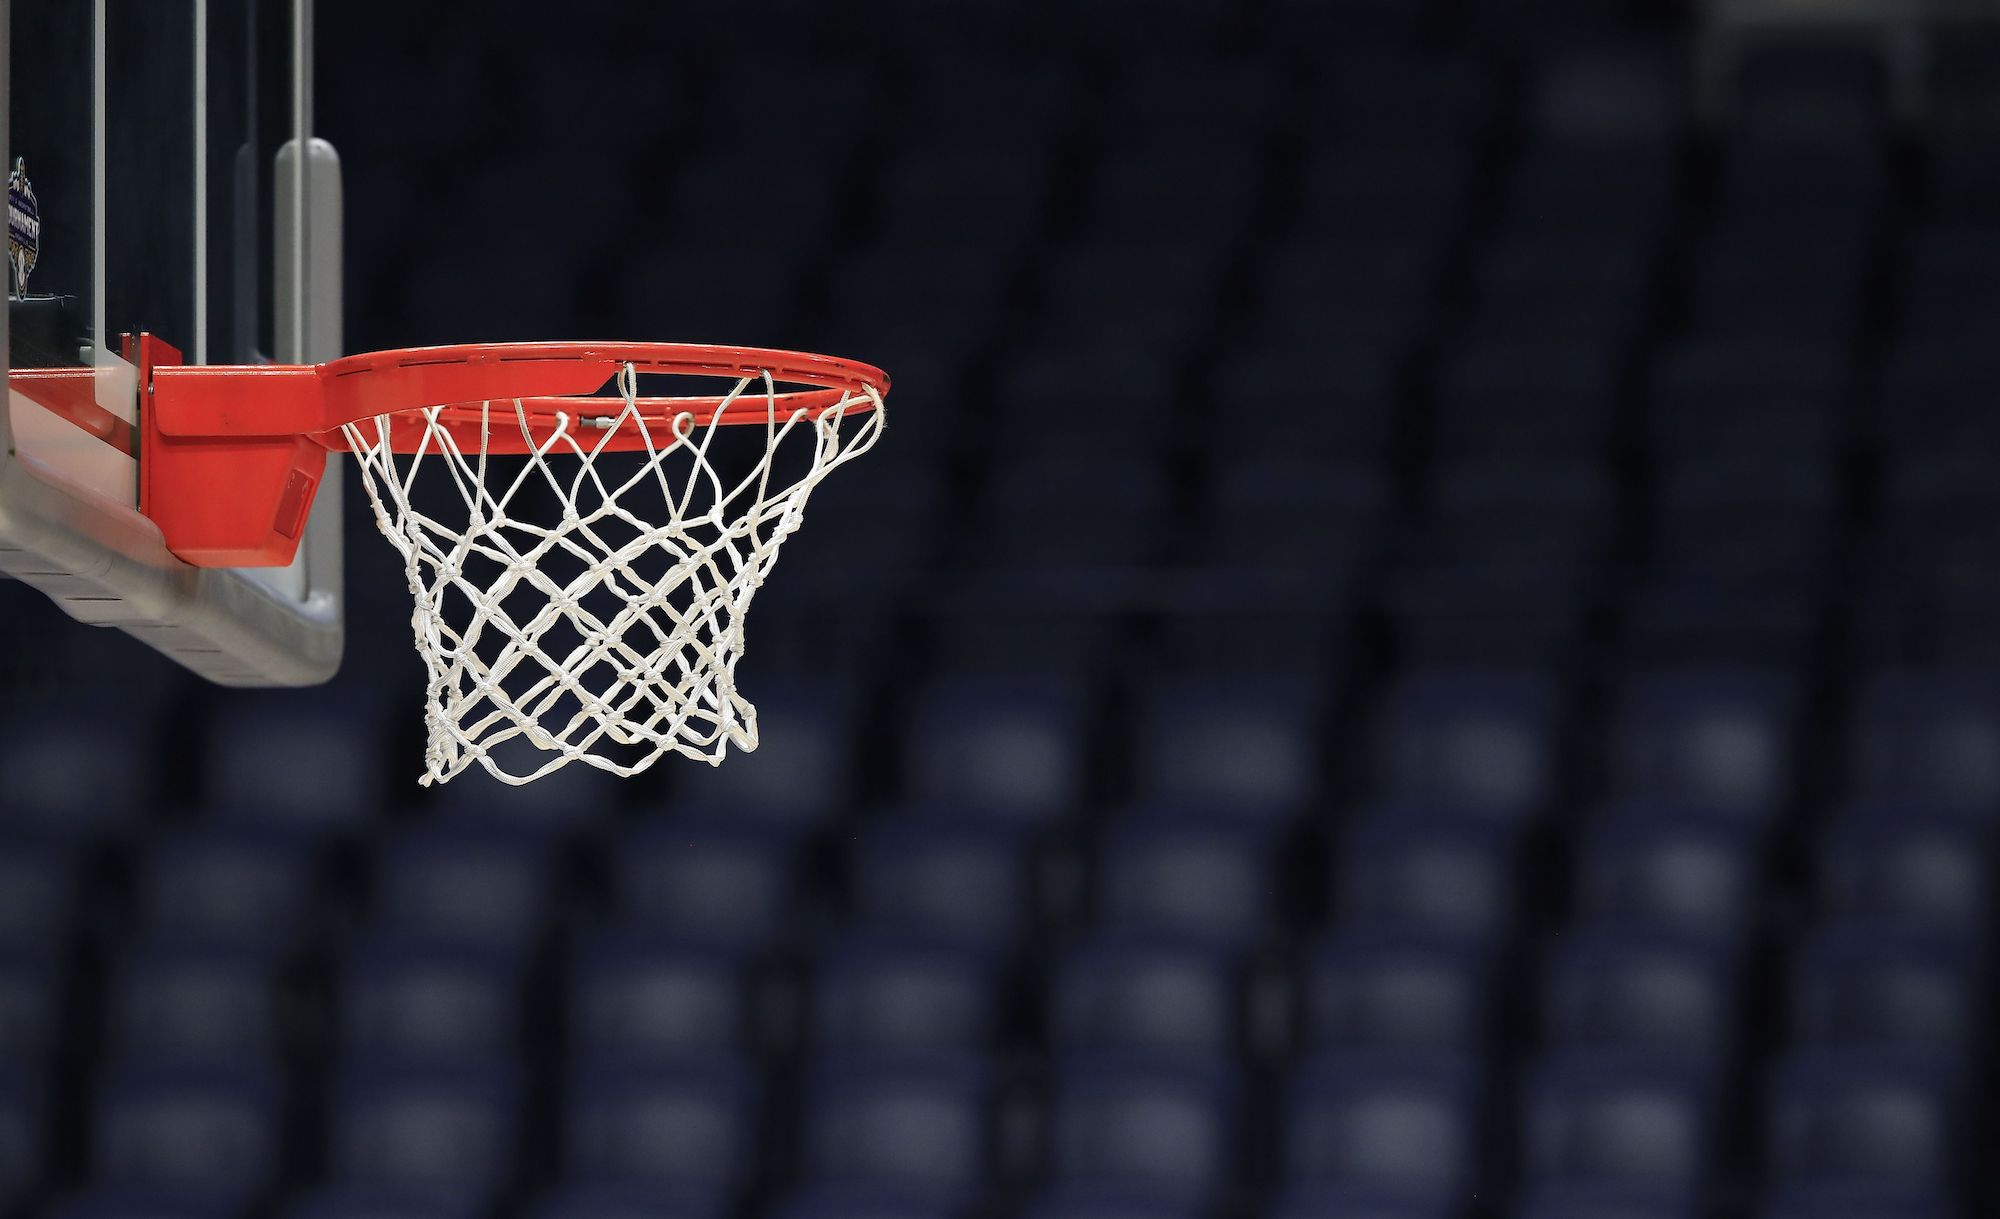 NASHVILLE, TENNESSEE - MARCH 12: The basket and the arena sit unused after the announcement of the cancellation of the SEC Basketball Tournament at Bridgestone Arena on March 12, 2020 in Nashville, Tennessee. The tournament has been cancelled due to the growing concern about the spread of the Coronavirus (COVID-19). The NCAA tournament has also been cancelled. (Photo by Andy Lyons/Getty Images)